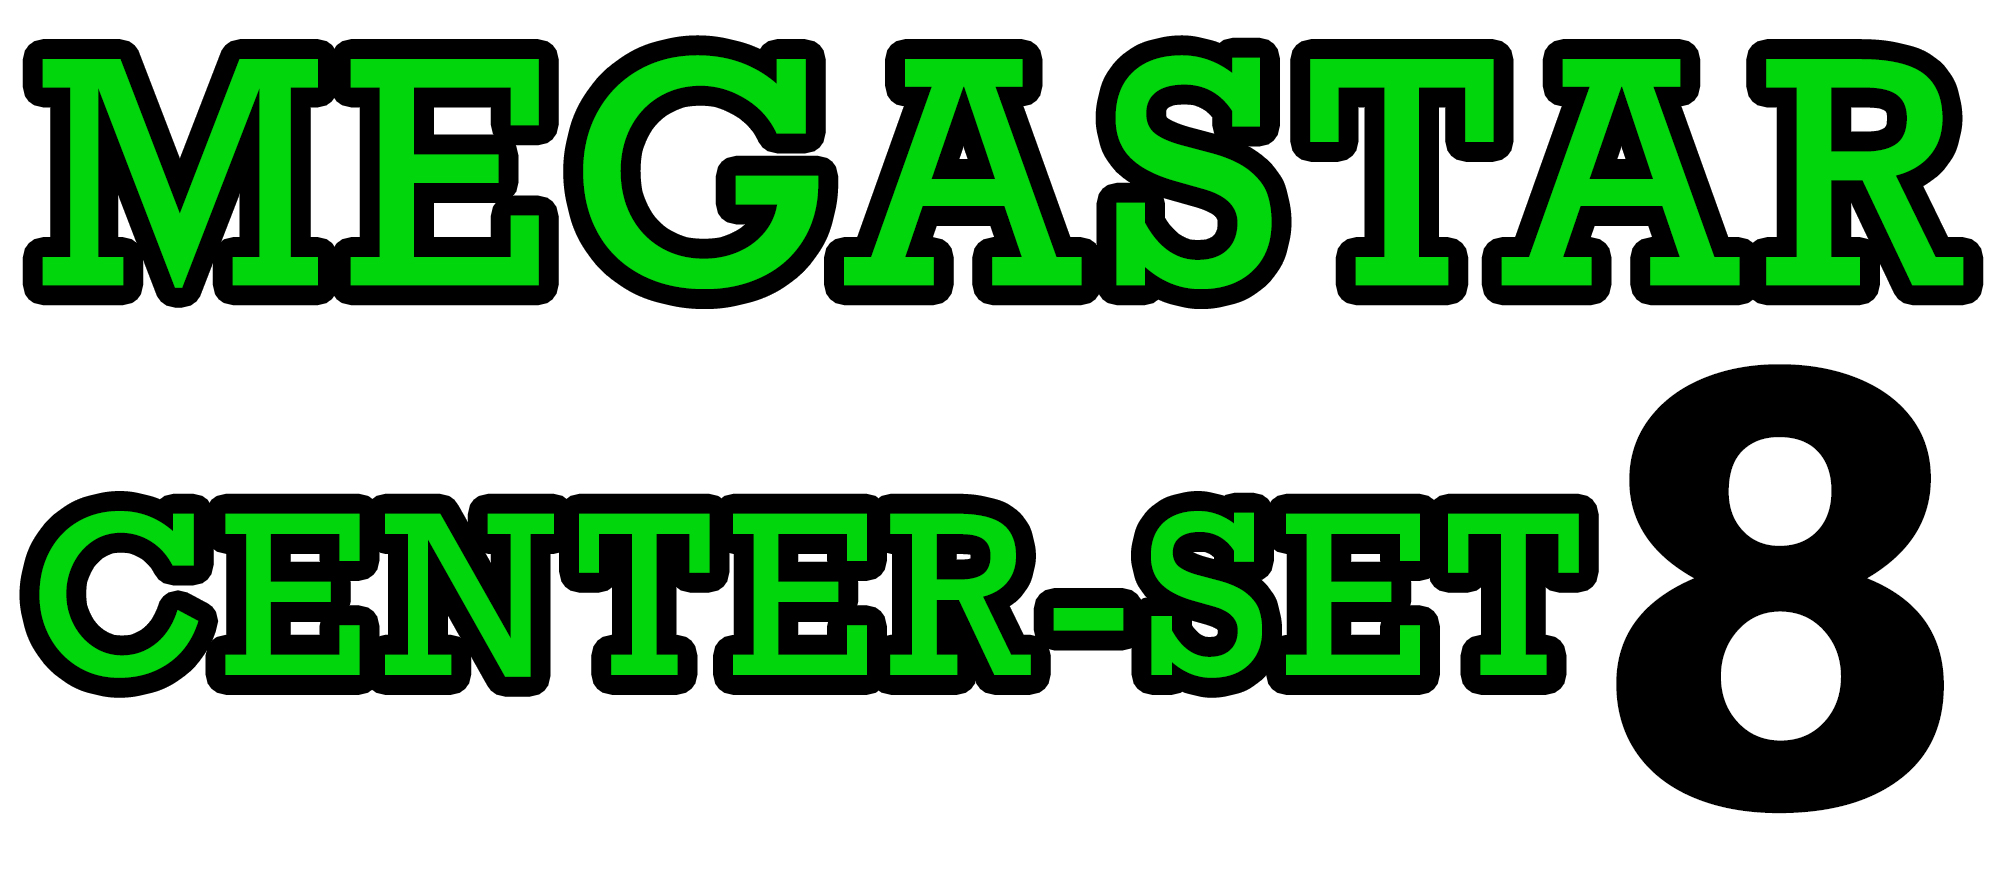 Custom MEGASTAR Wheel using any 8 Inch TRAMPA Tyres